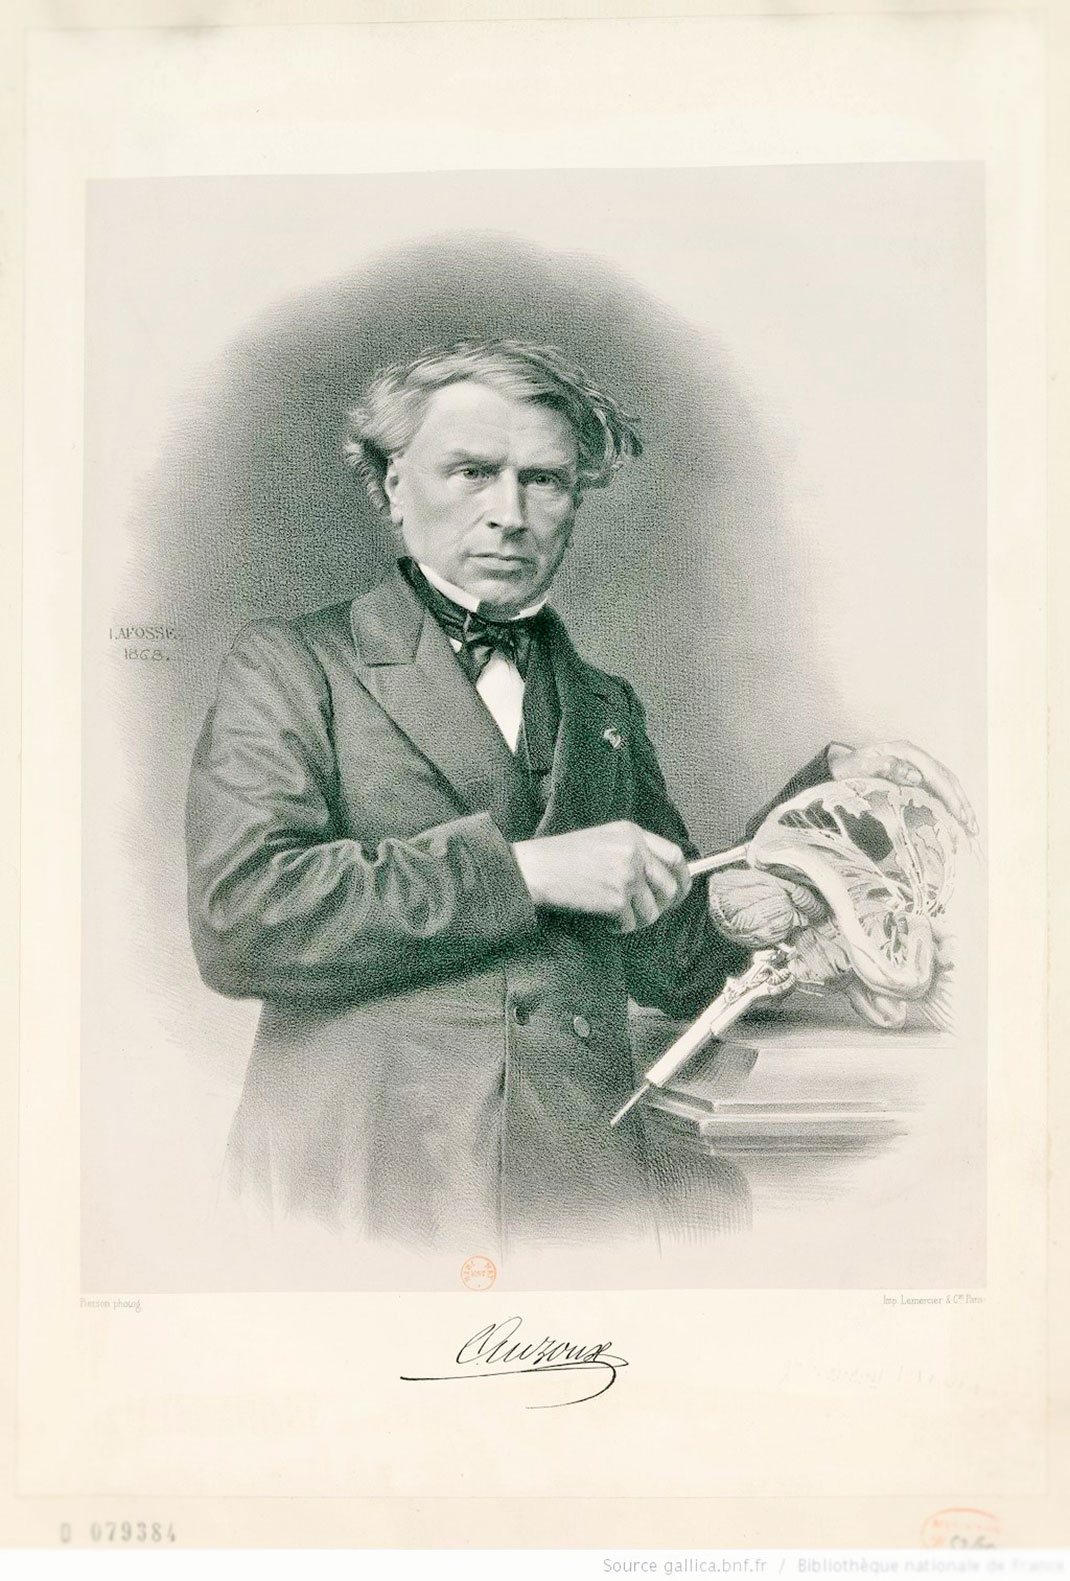 Portraits de Louis Thomas Jérôme Auzoux (XIXe s.) Coll. de la Bibliothèque nationale de France, département estampes et photographie